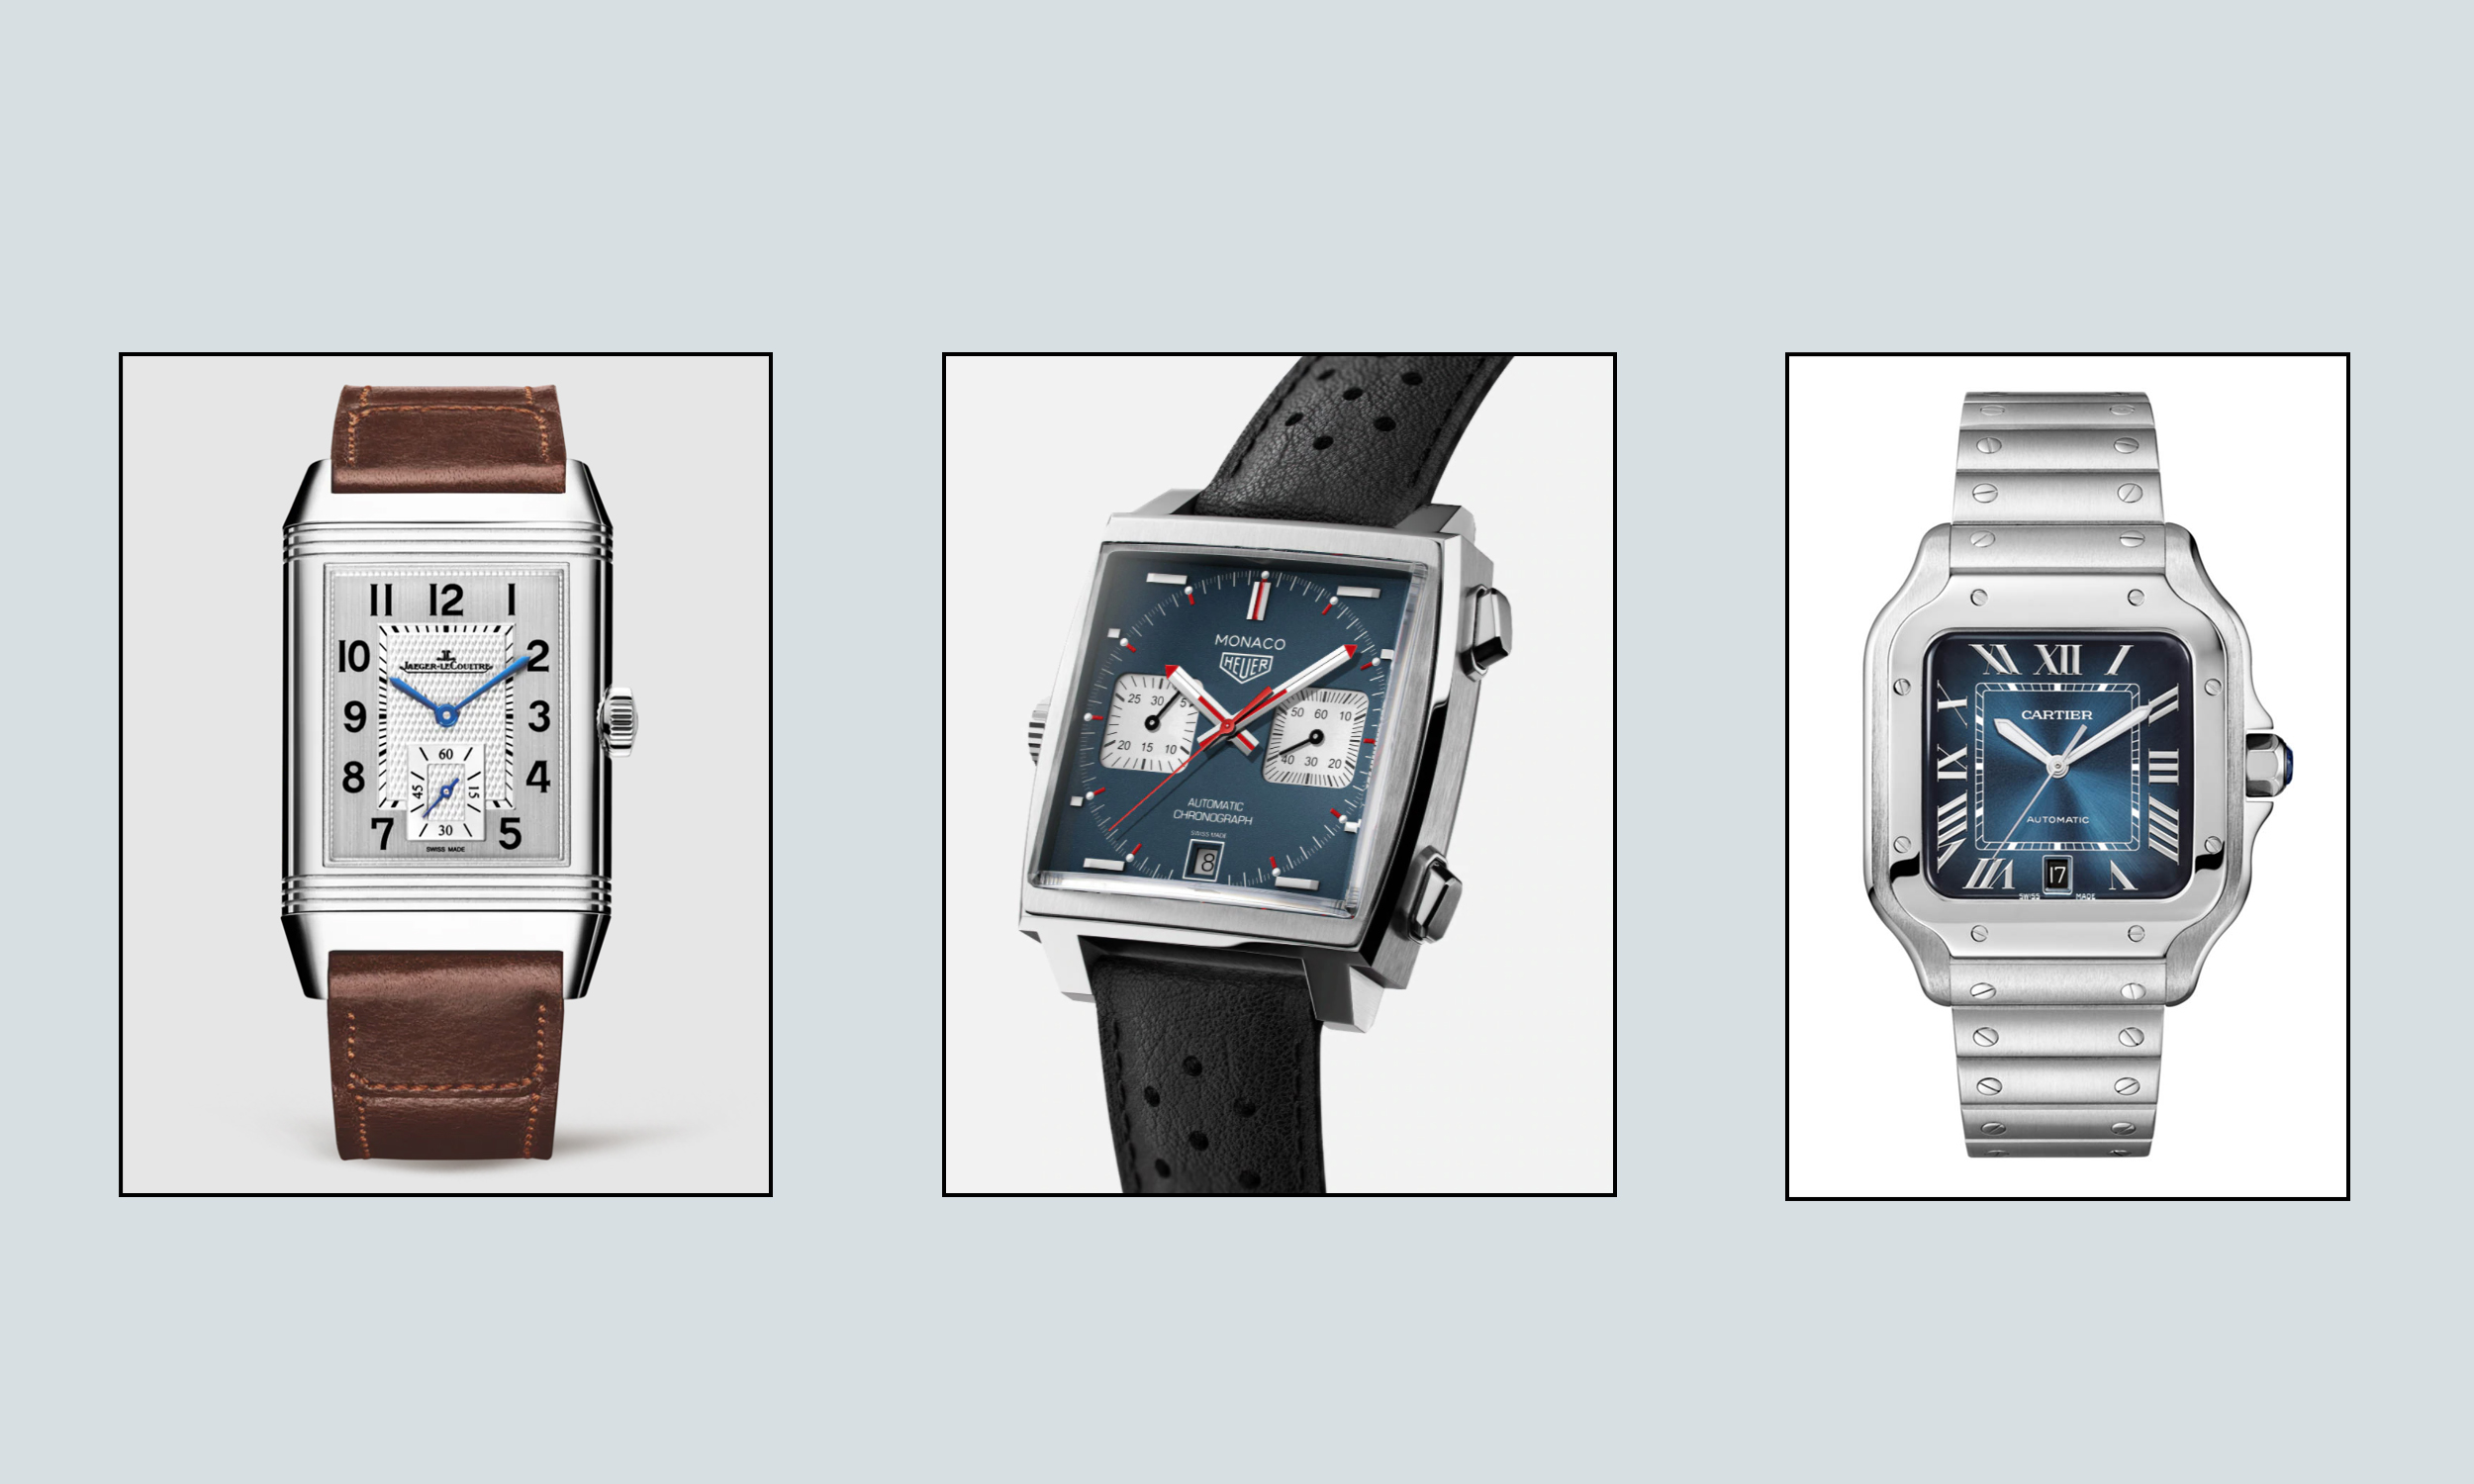 Most Iconic Square Watches to Buy